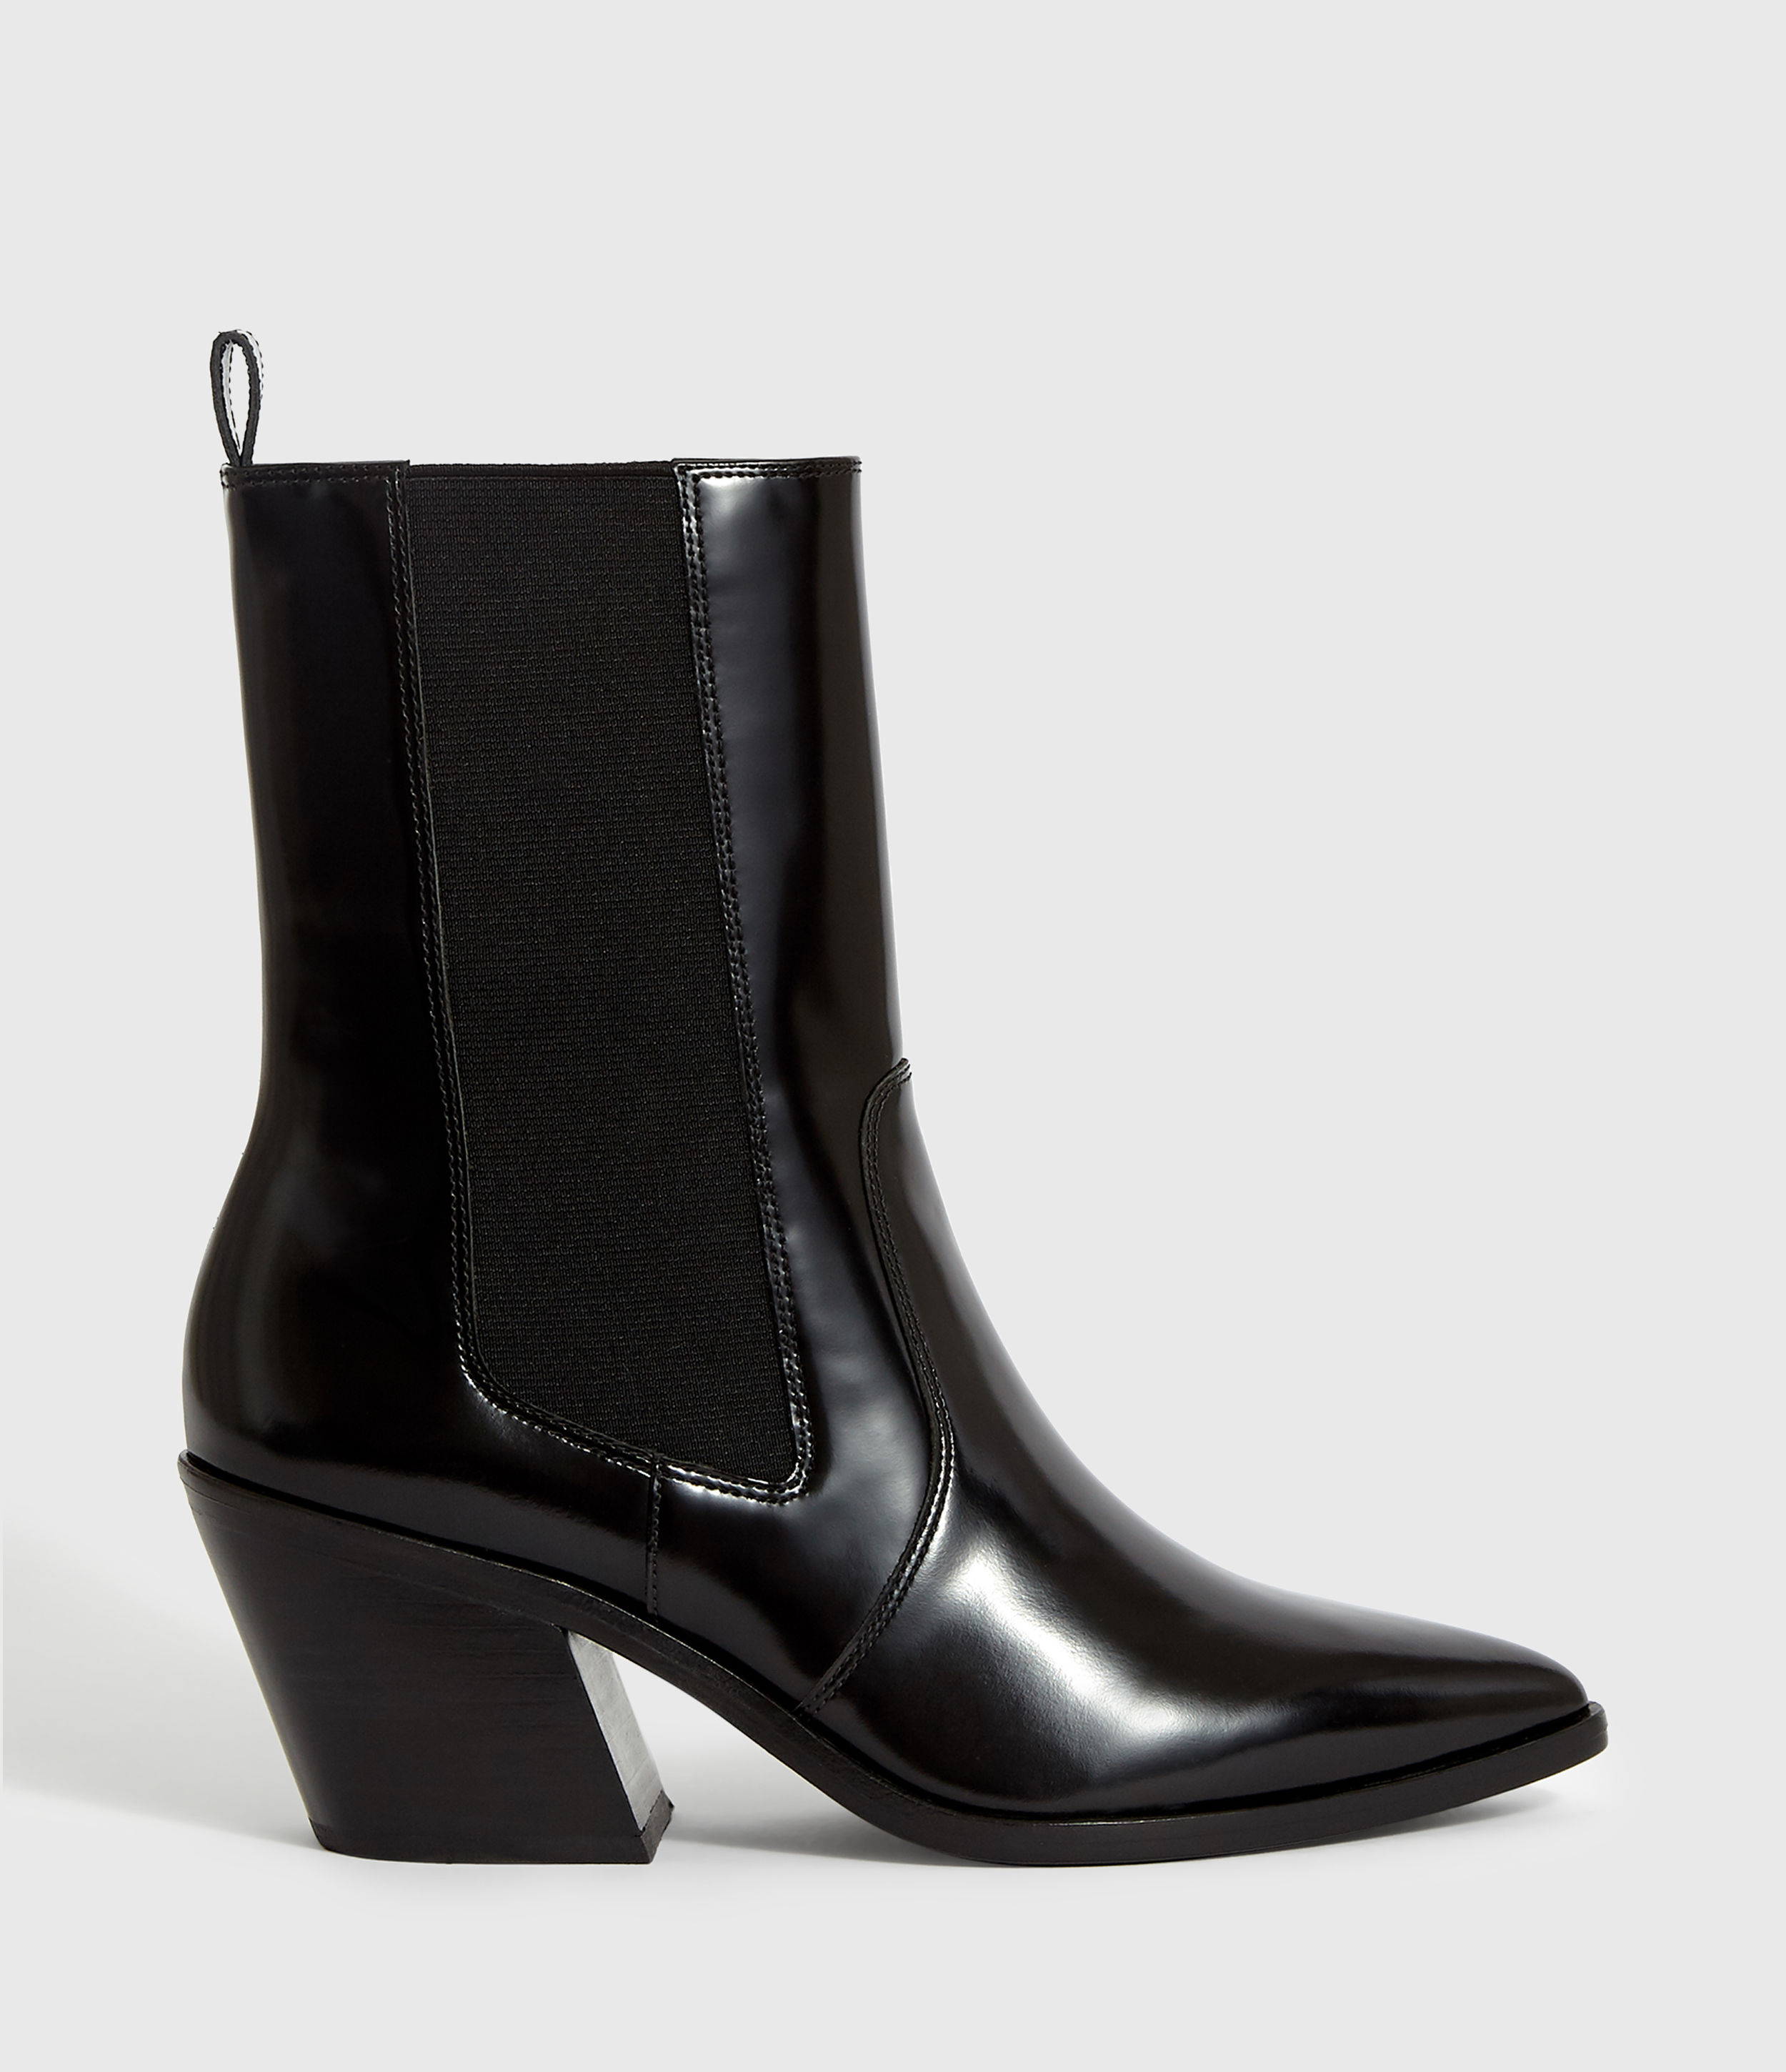 AllSaints Womens Carolina Boot, Black, Size: UK 5/US 7/EU 38